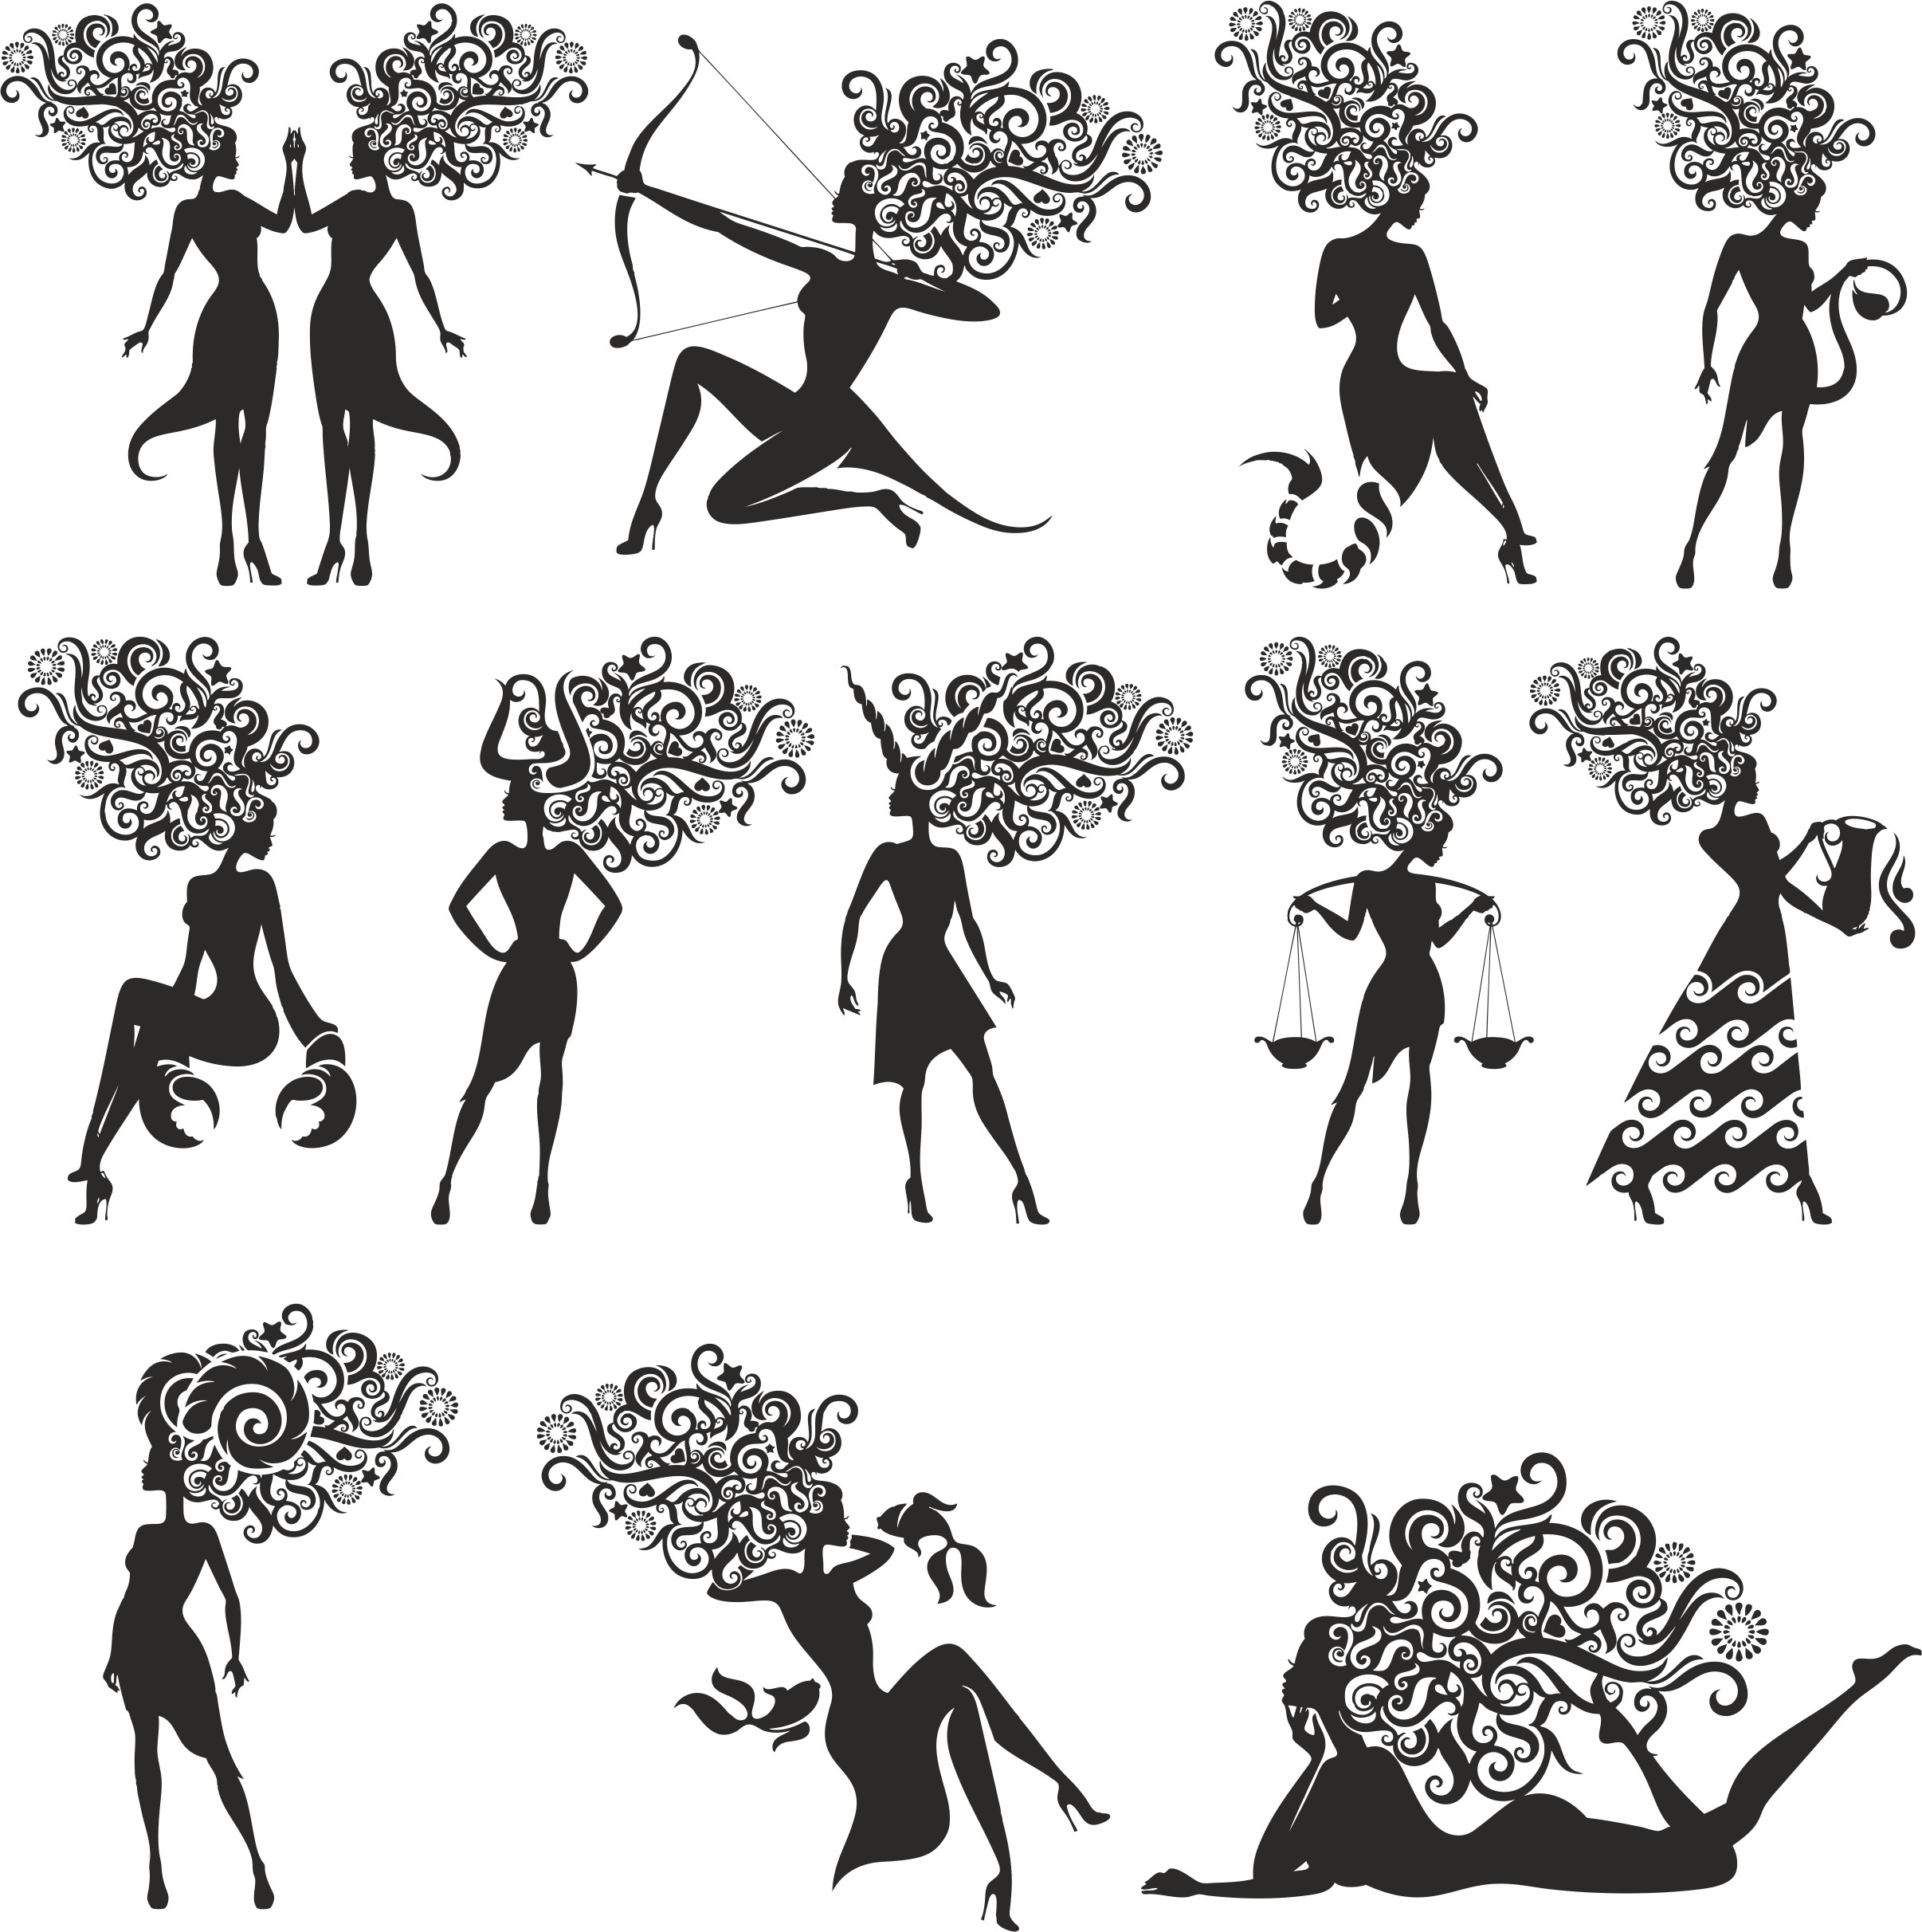 Zodiac Signs In The Form Of Silhouettes Of Women Free CDR Vectors Art